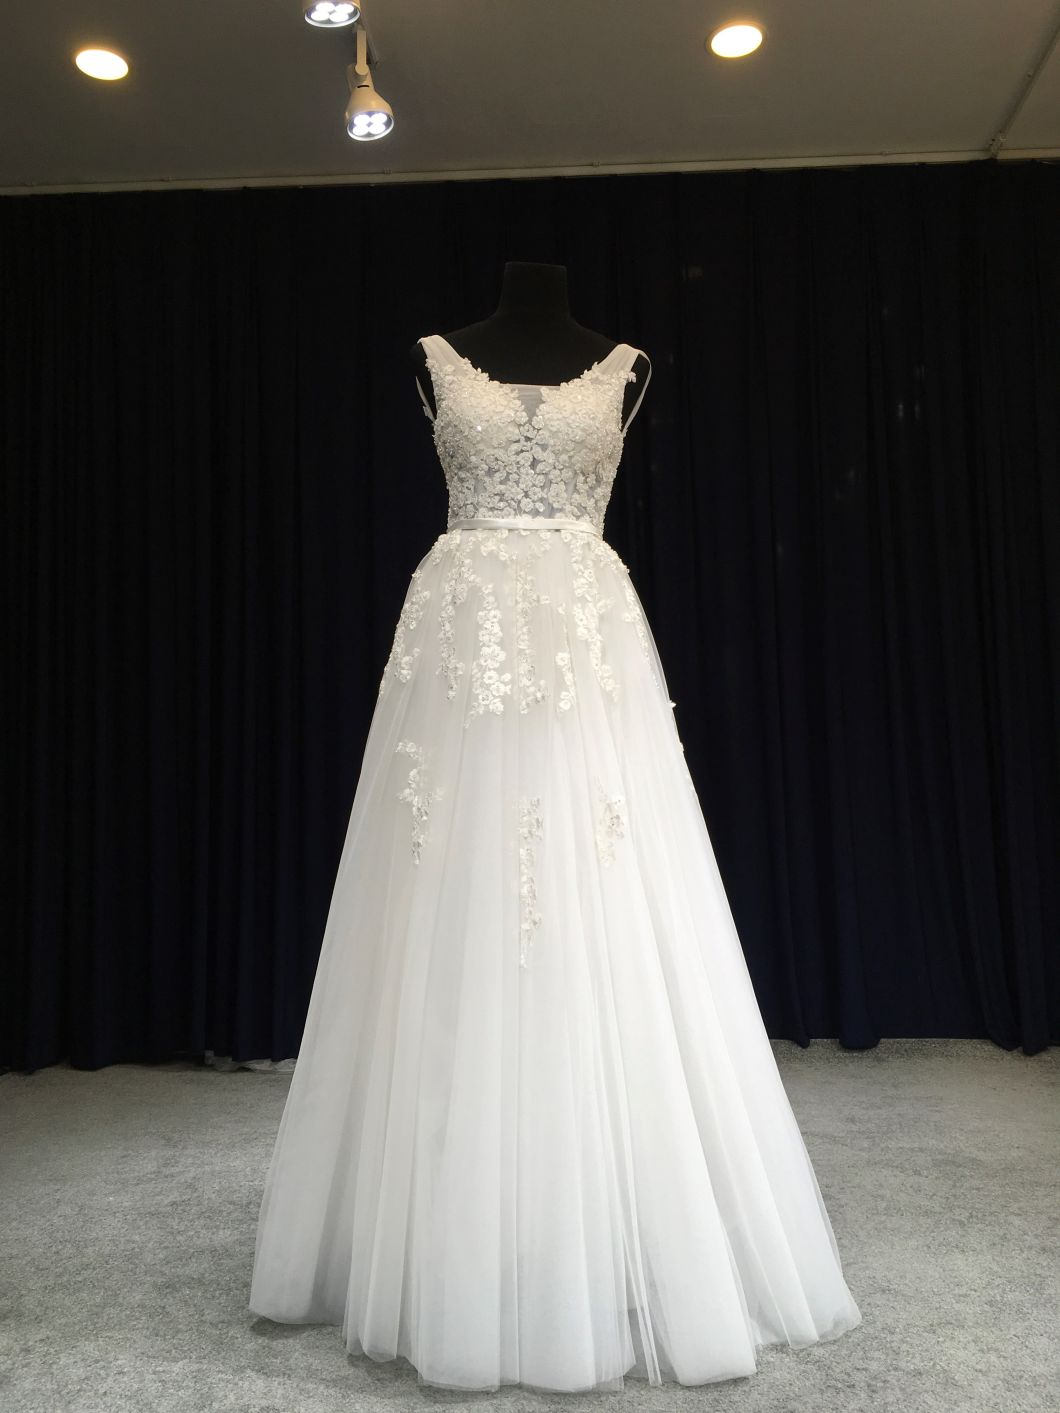 Aoliweiya Newest Designer Sheath Wedding Dress